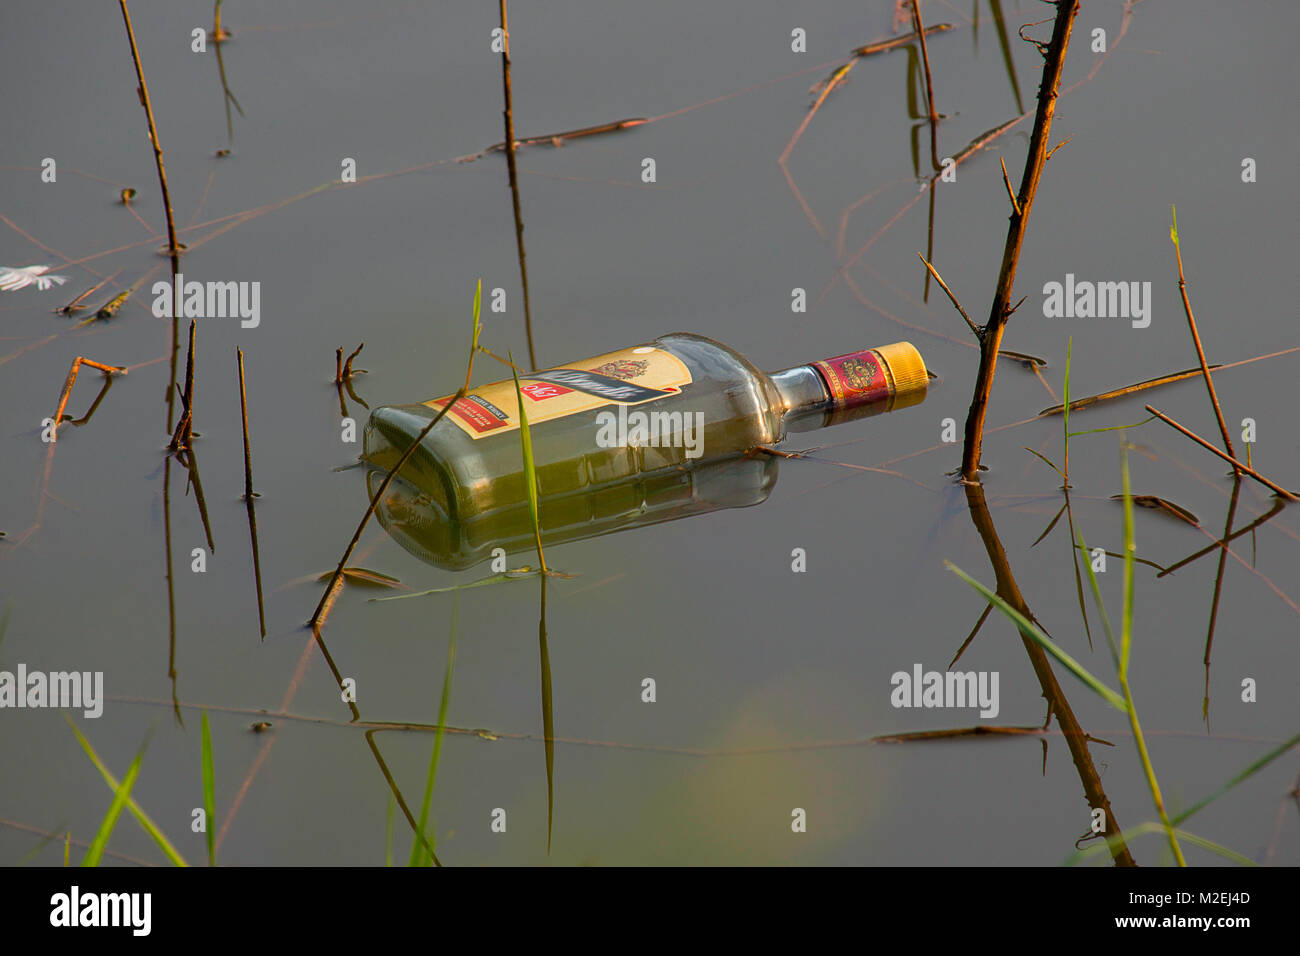 Common example of human tendency to neglect and pollute the nature and mother earth. An empty liquor bottle thrown - Stock Image